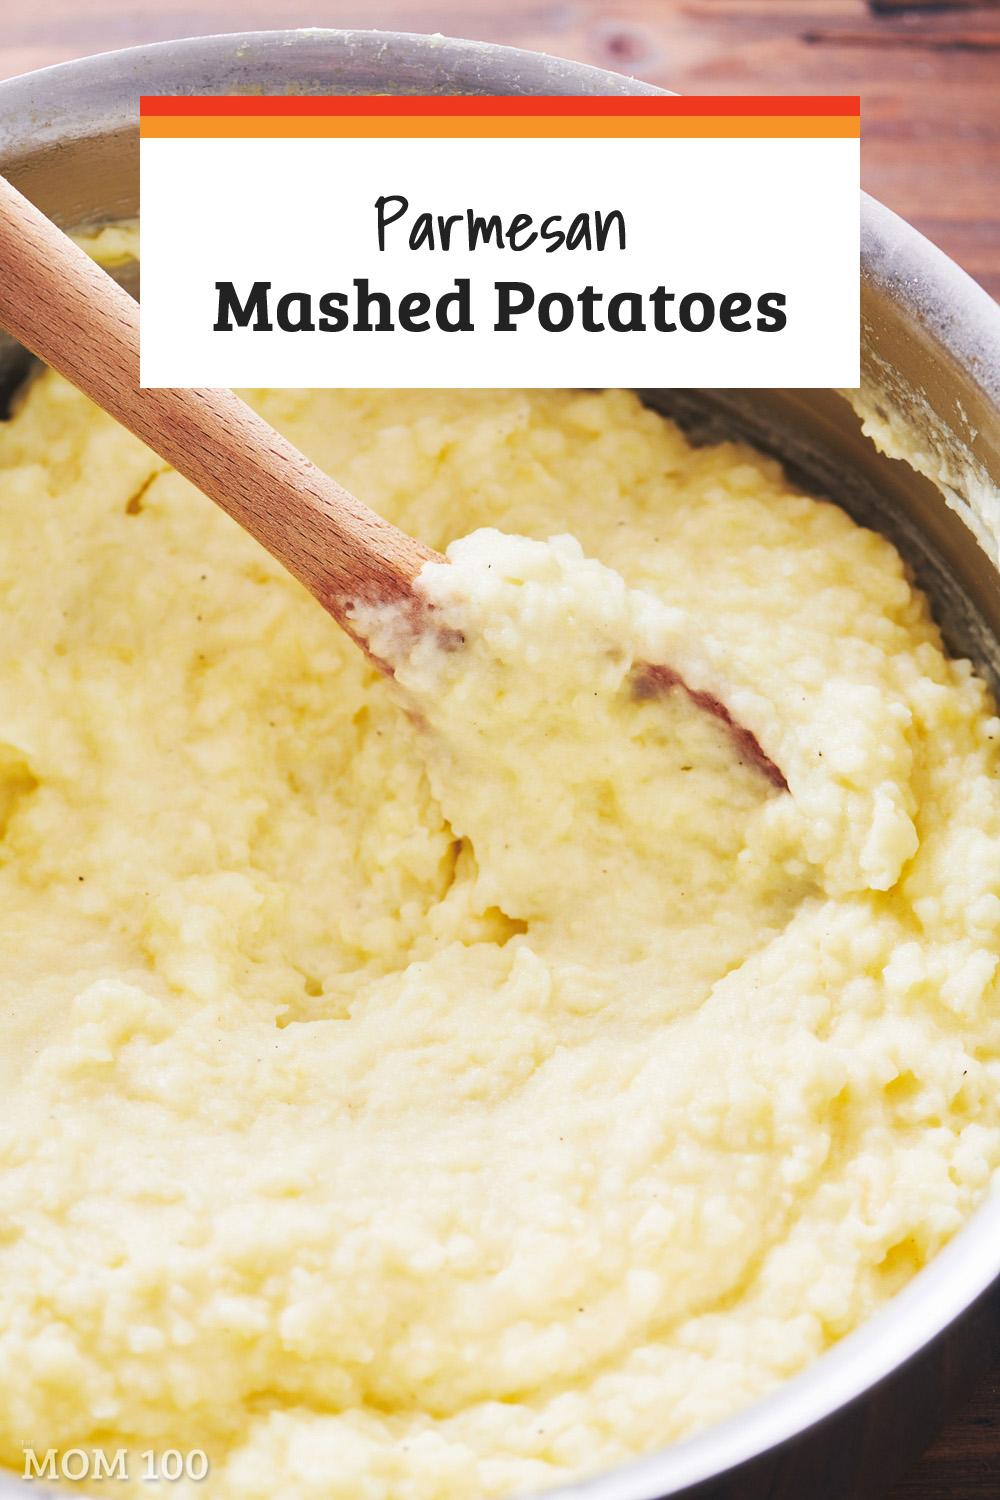 Parmesan Mashed Potatoes: Classic mashed potatoes get a little more personality and flavor with the addition of a little Parmesan cheese.  This is the ultimate comfort food.